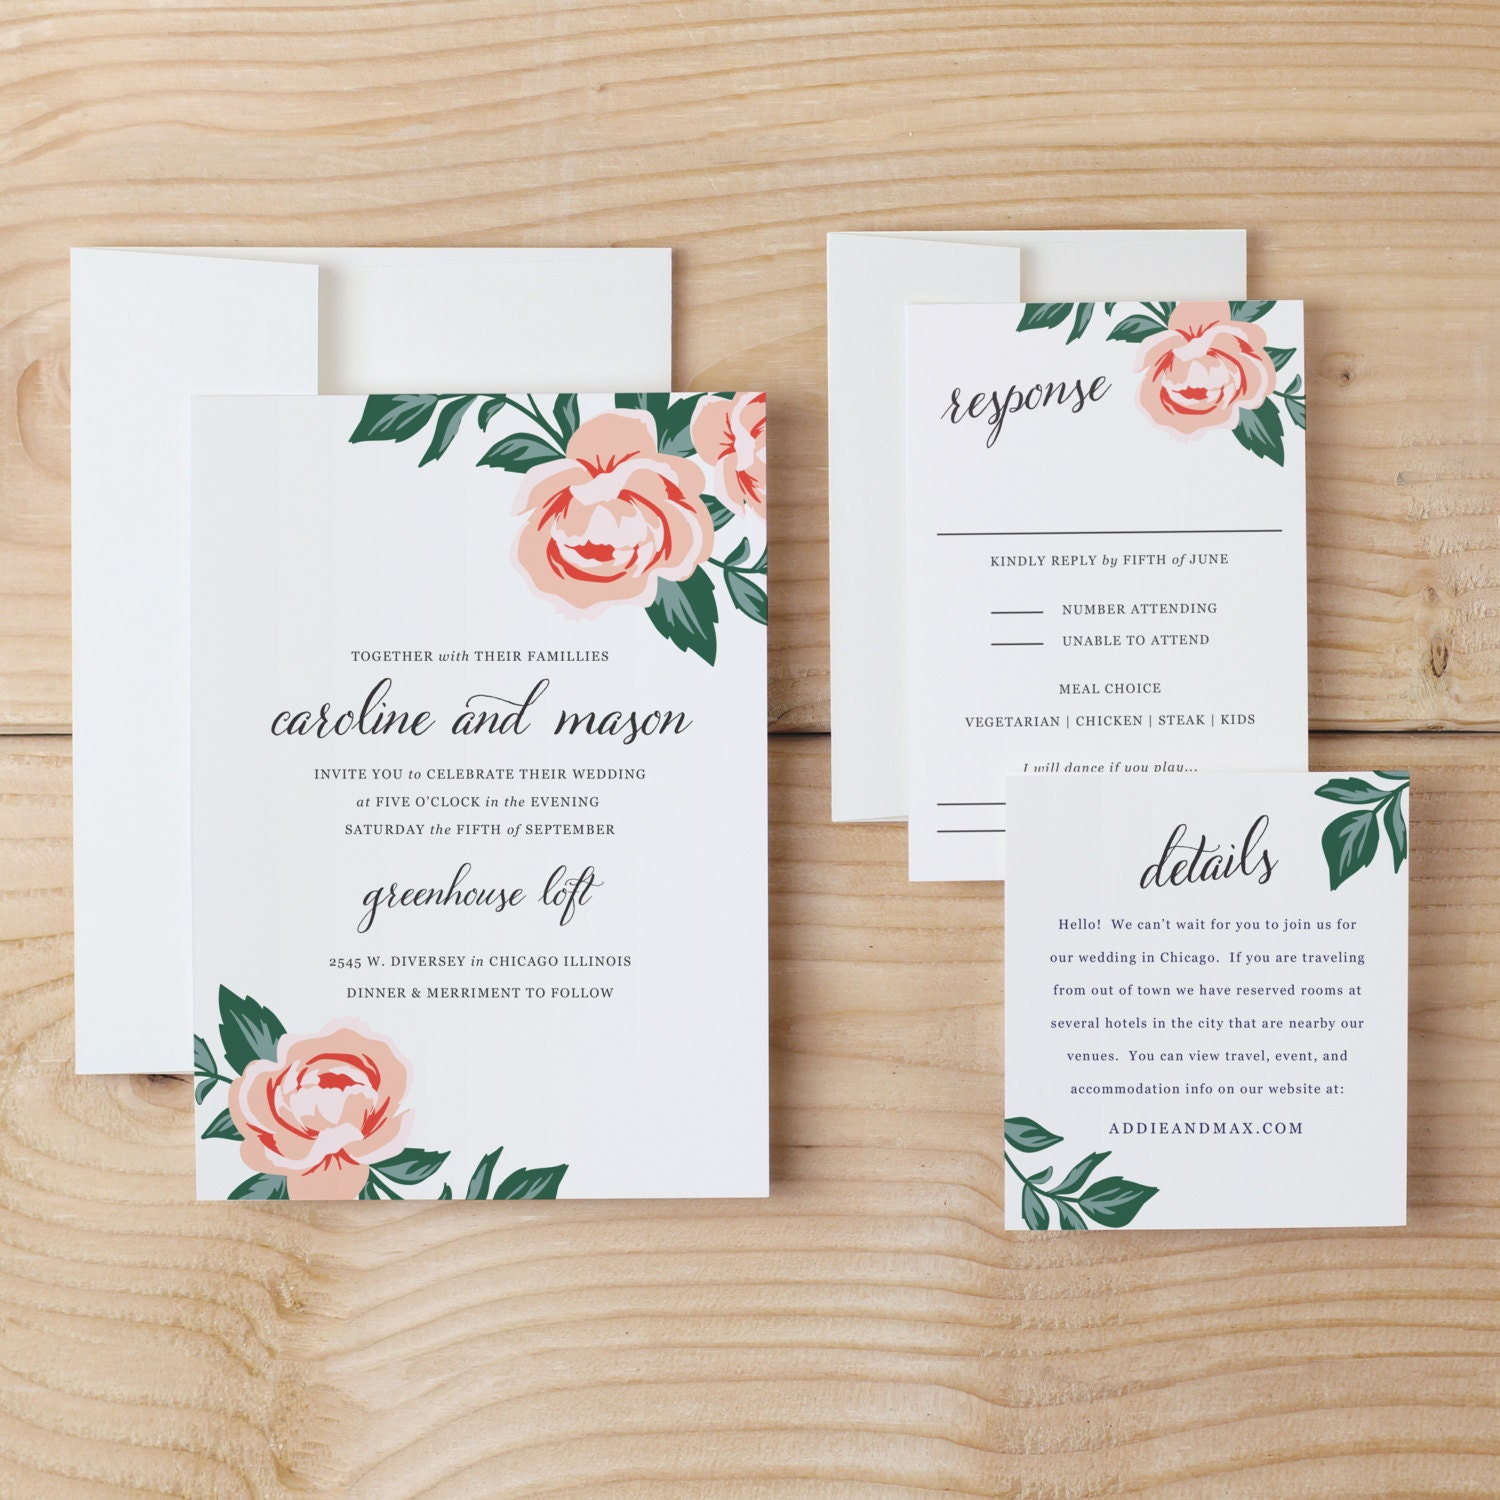 Diy wedding invitation template colorful floral word or pages diy wedding invitation template colorful floral word or pages mac or pc change the colors text print at home instant download stopboris Image collections